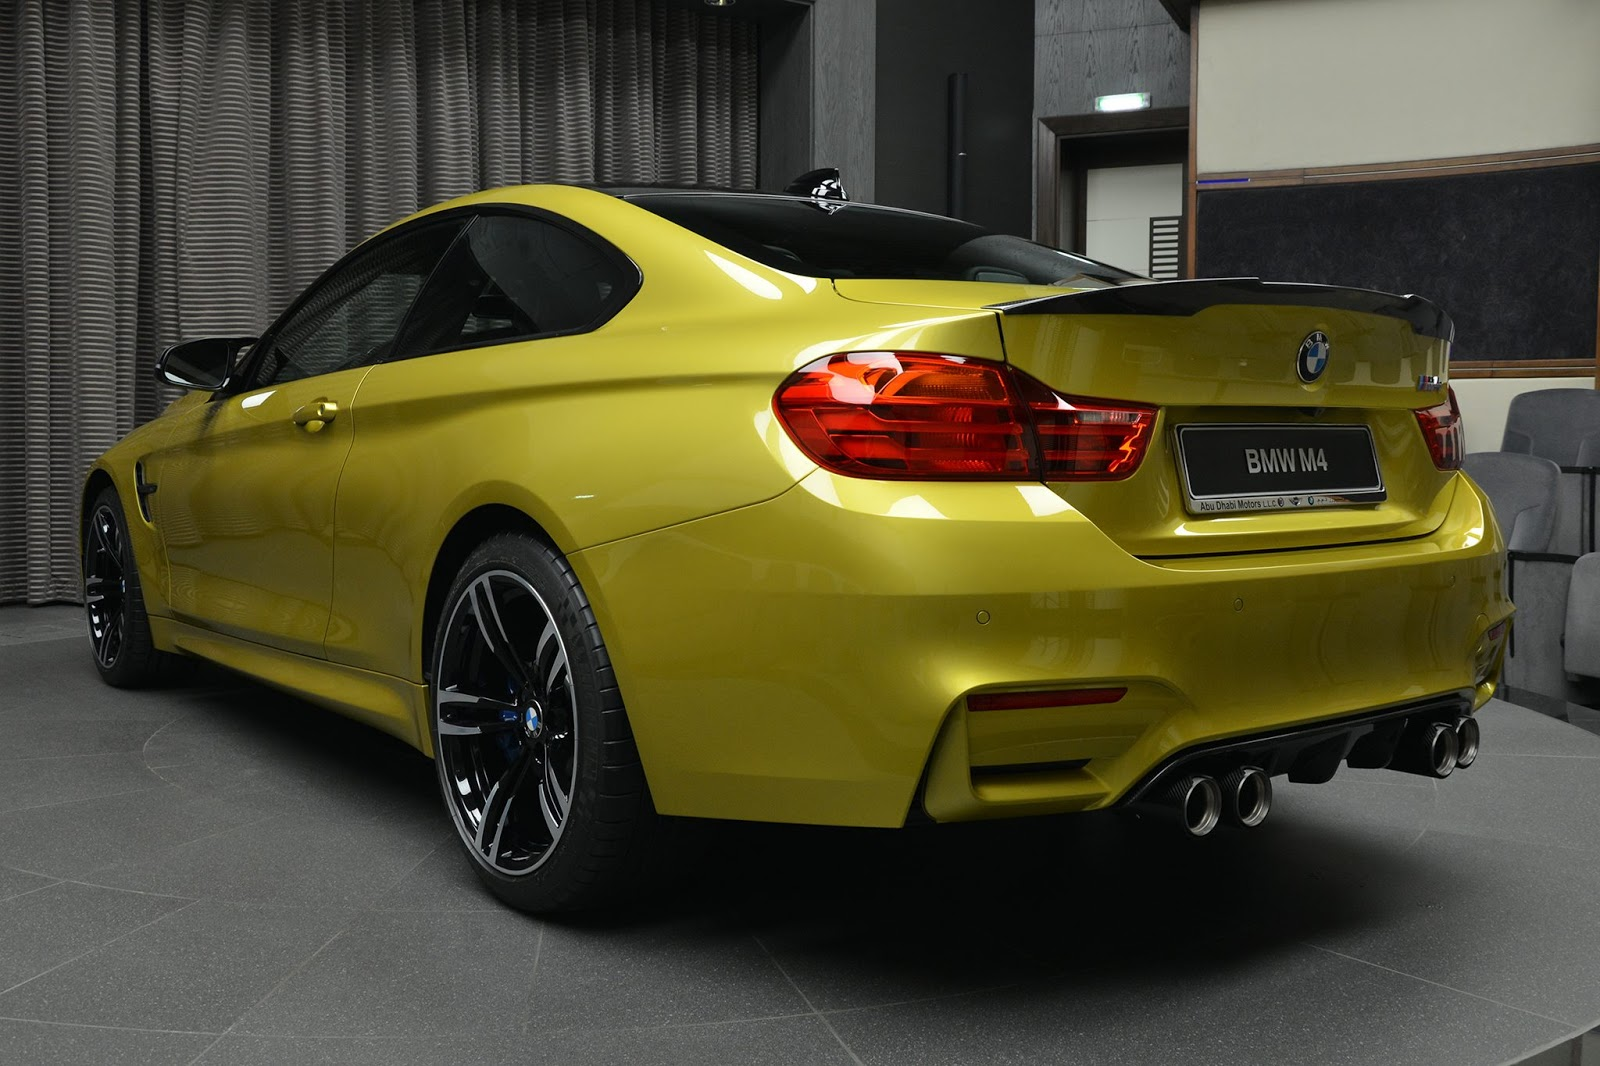 BMW_M4_Austin_Yellow_11